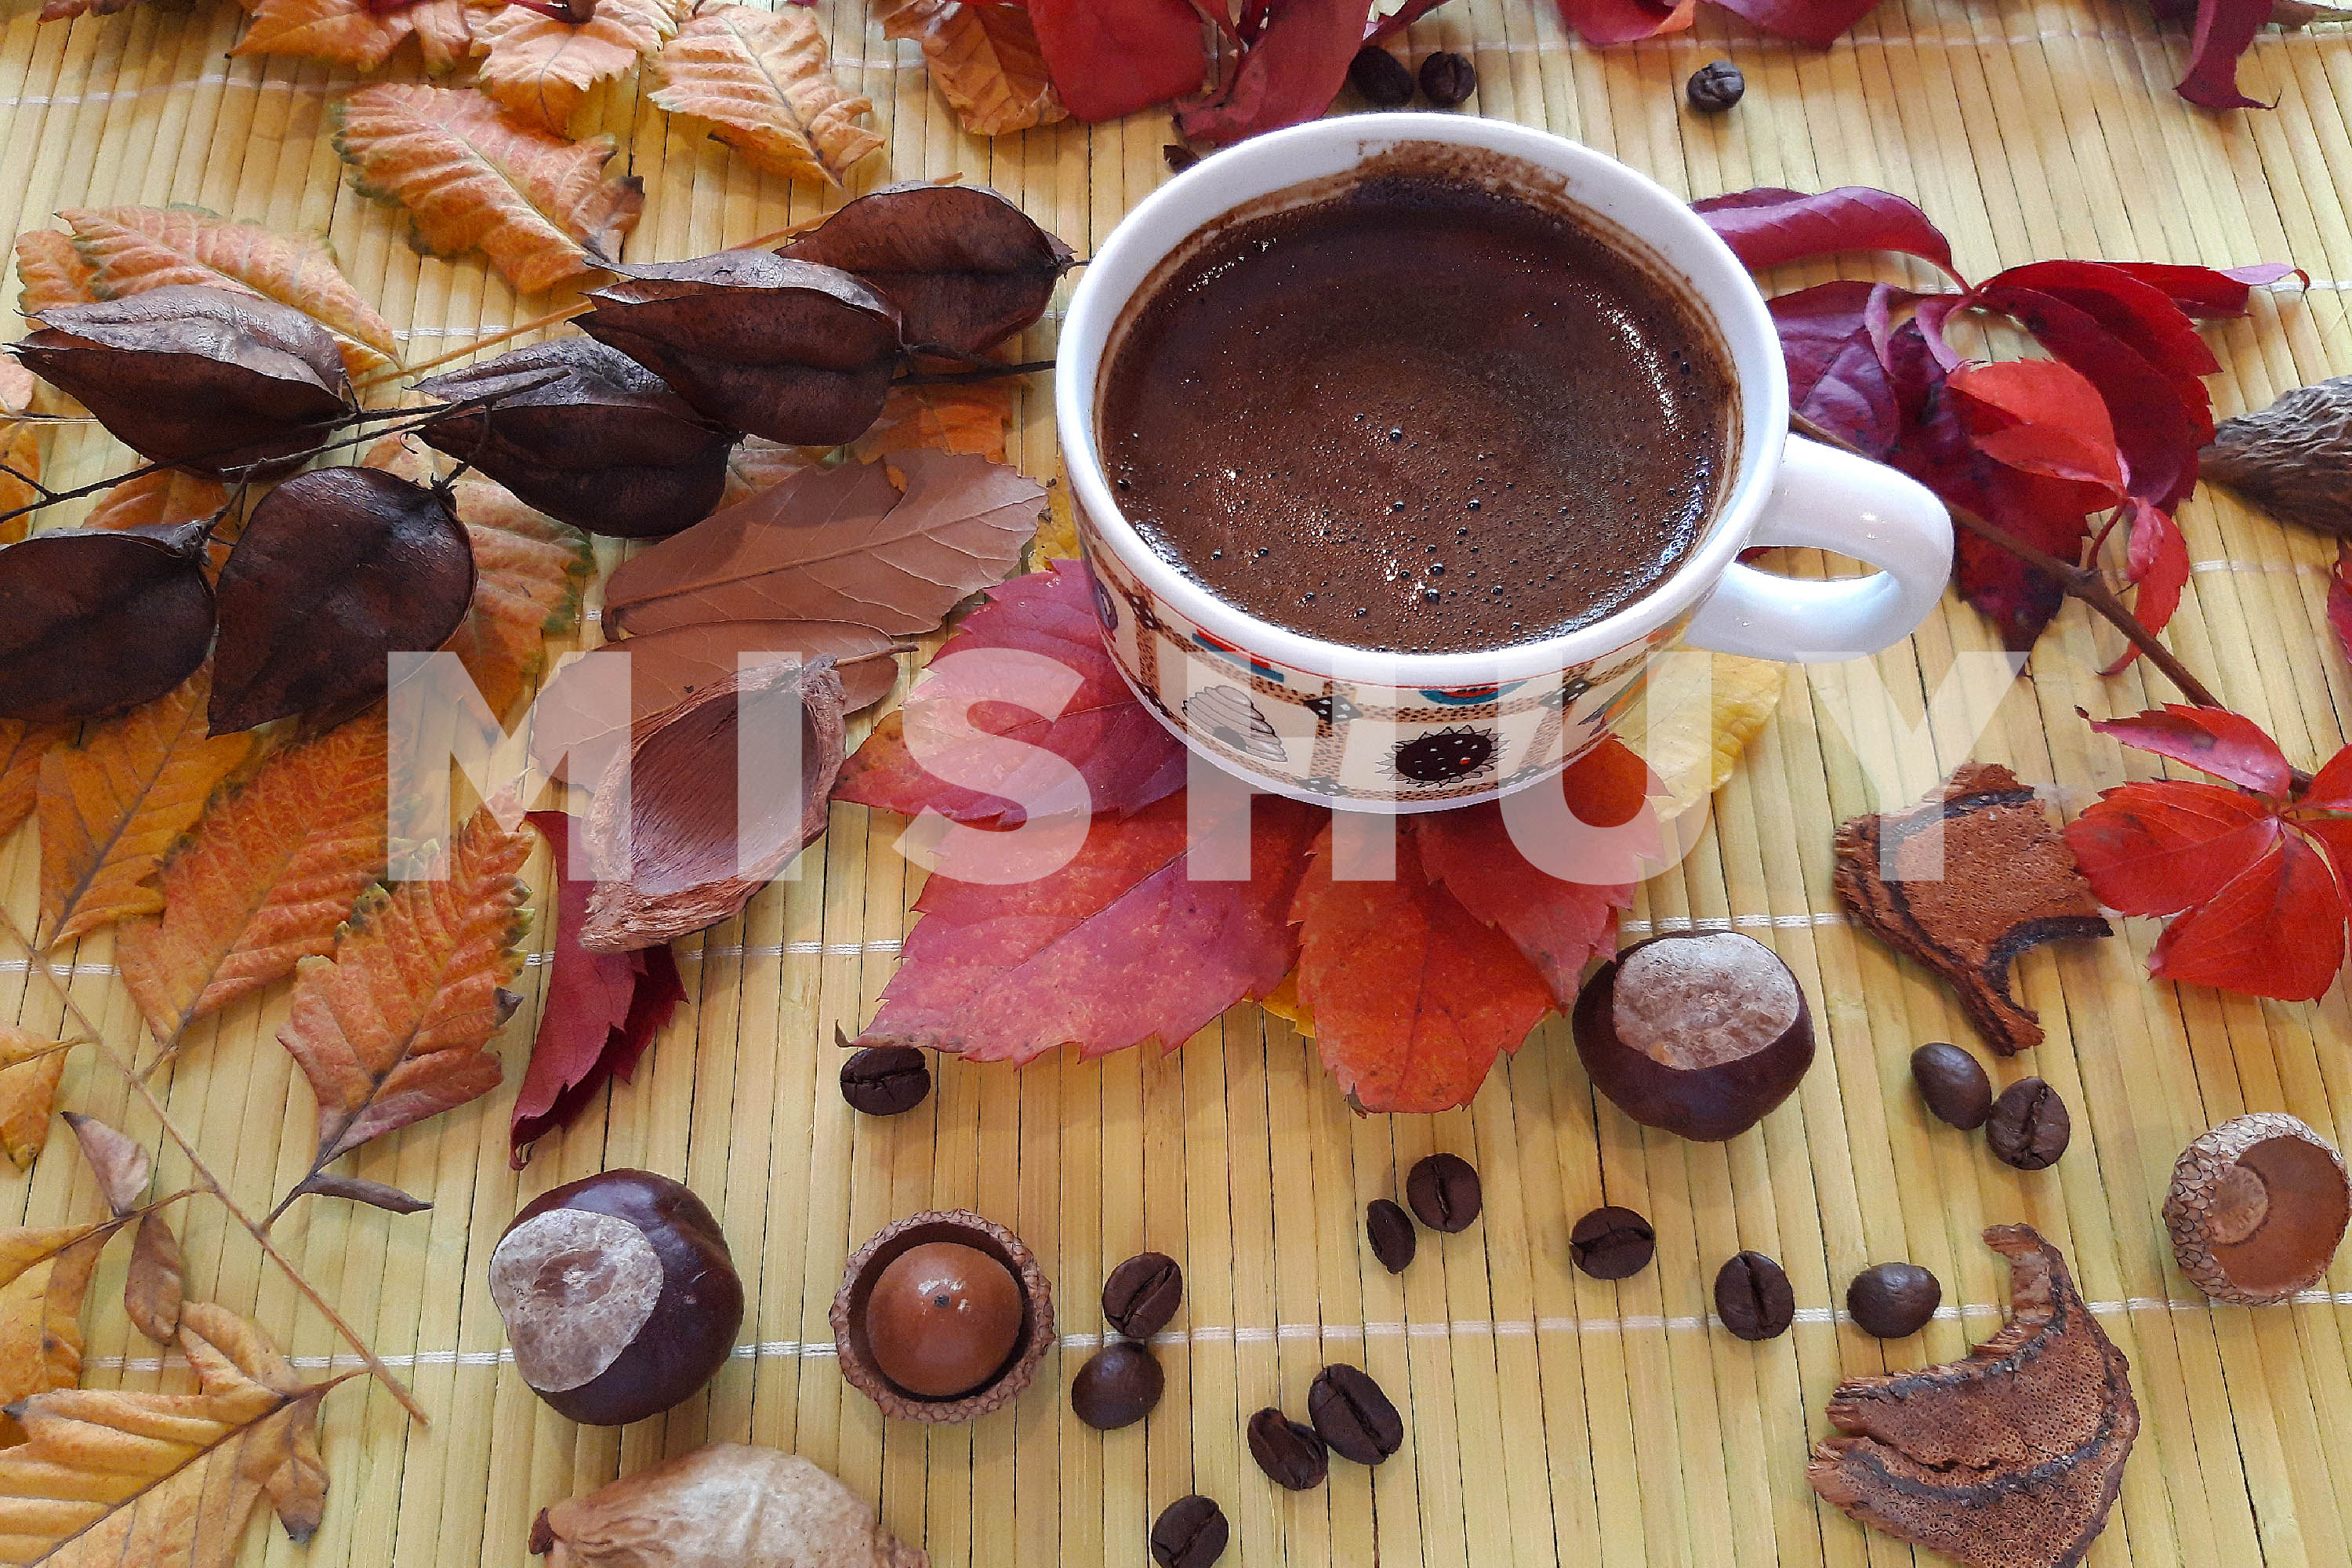 Autumn composition. Cup of coffee and autumn leaves2 example image 1